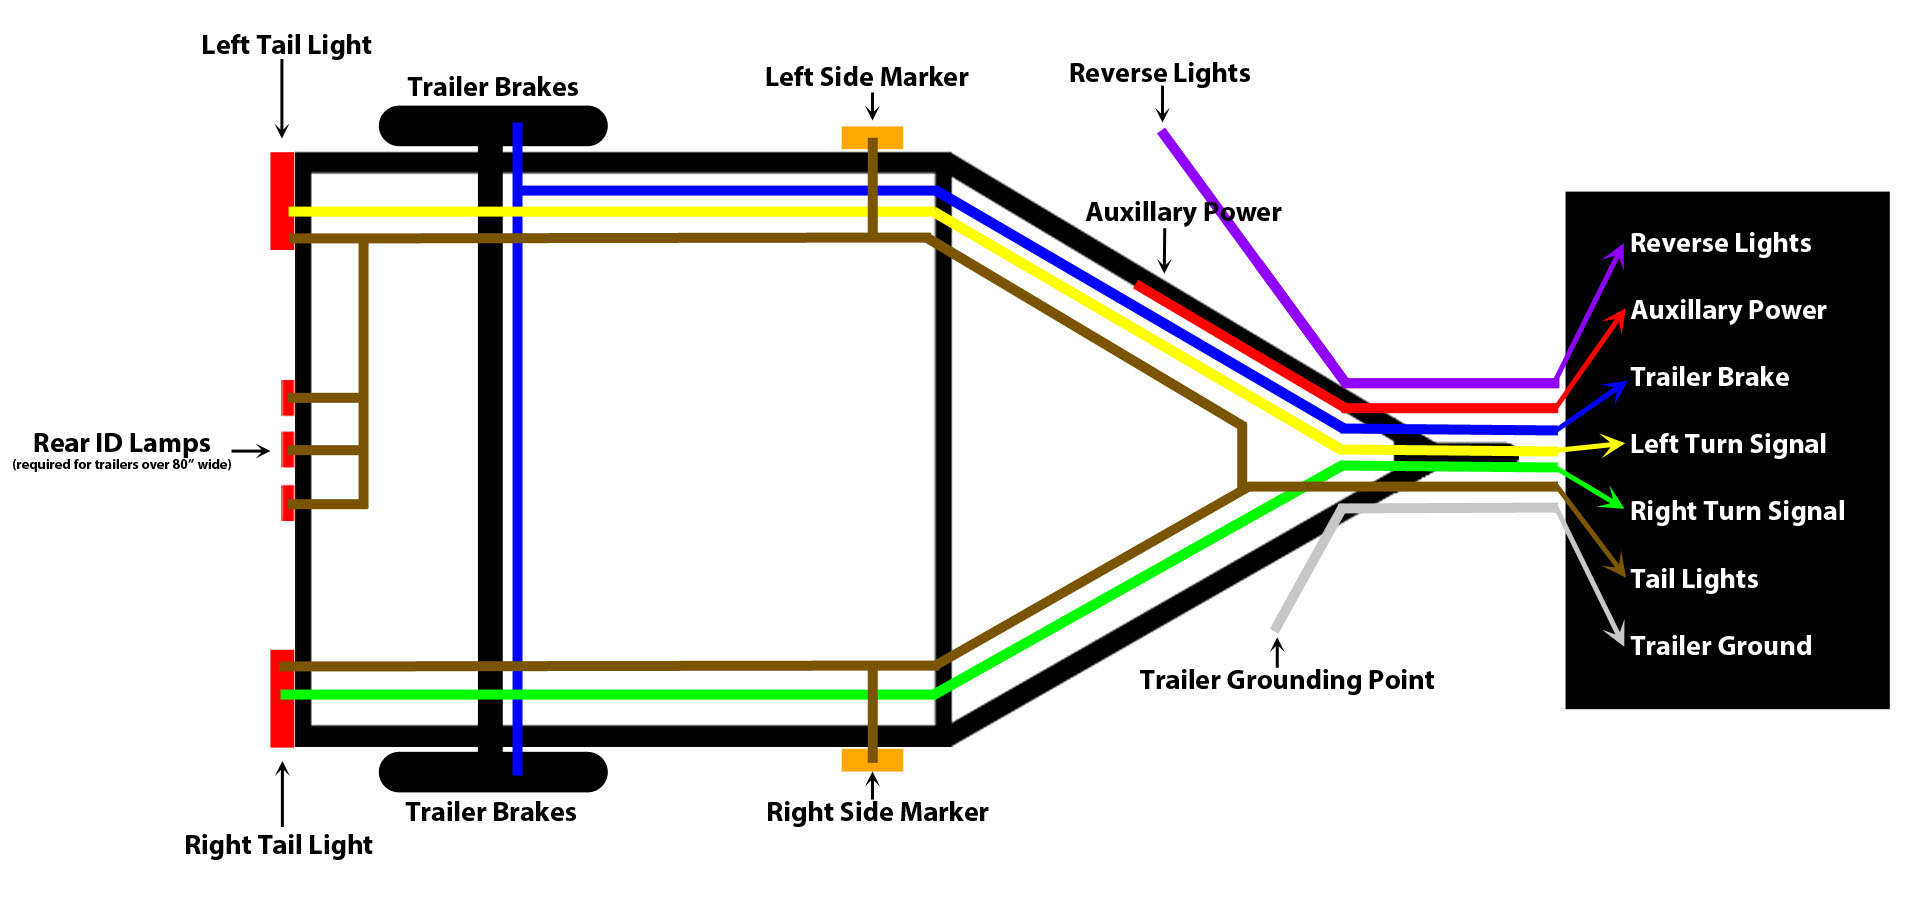 trailer wiring diagram?t=1419082606 trailer wiring guide newman sled bed trailer wiring diagram at aneh.co